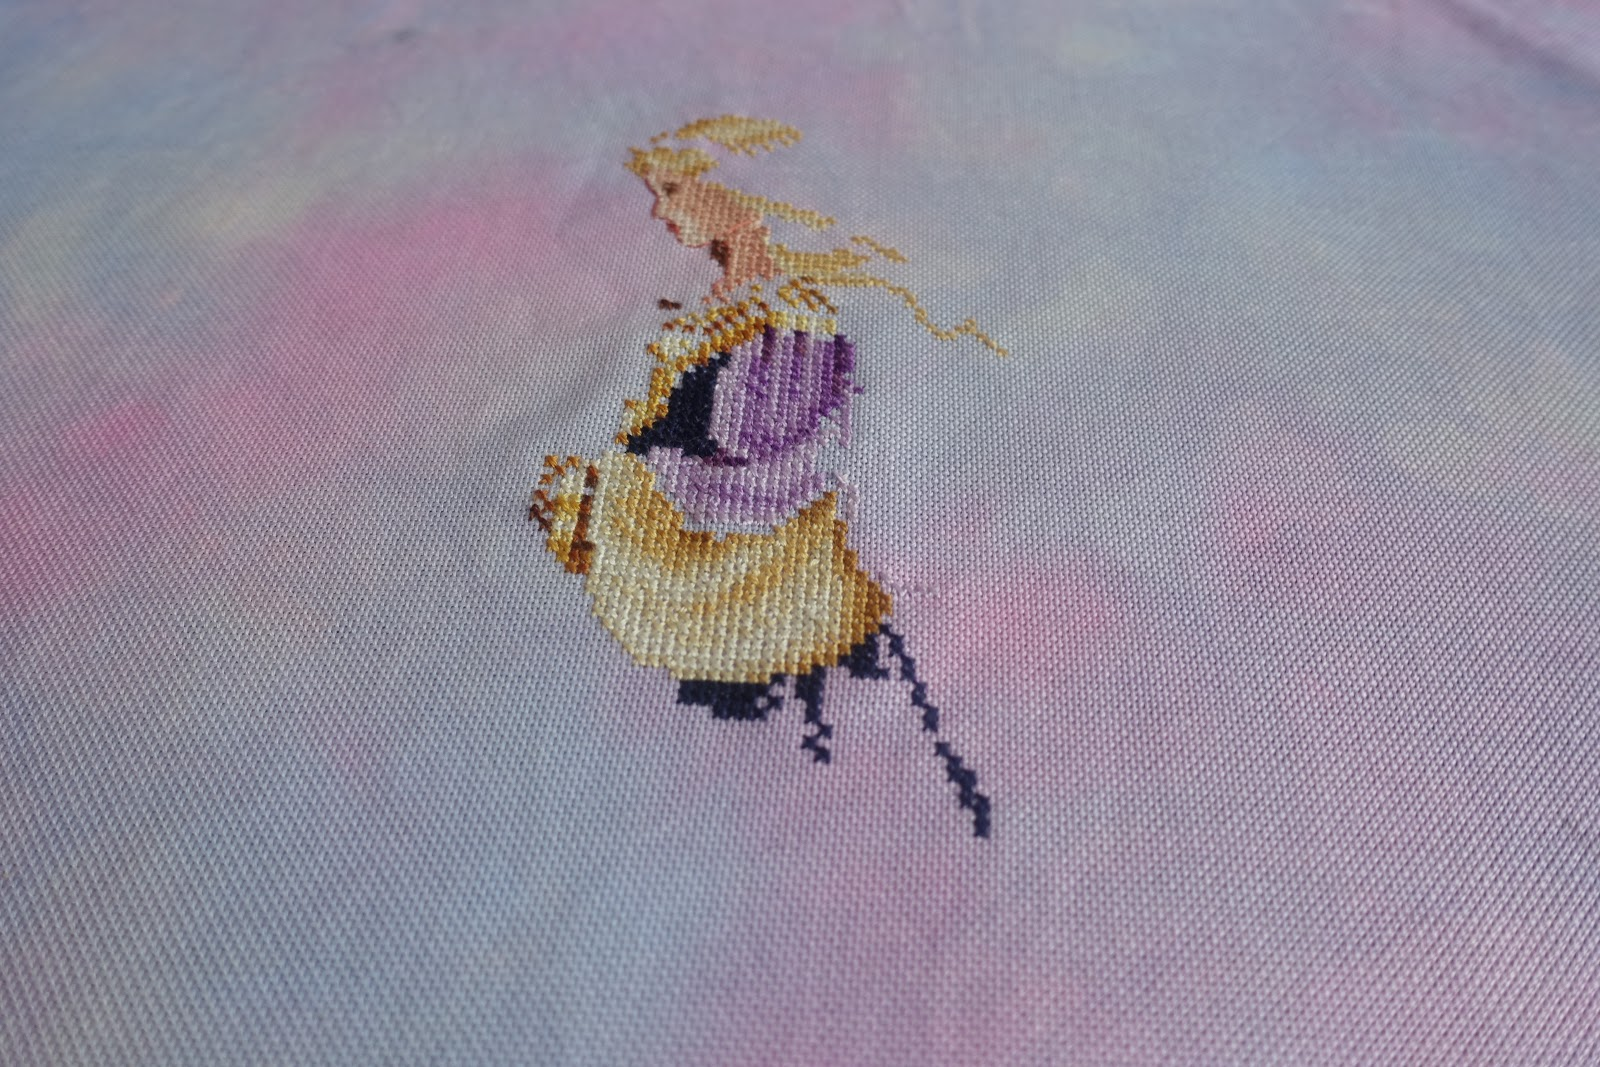 SIMPLY IN STITCHES: New Year - New Cross stitch start